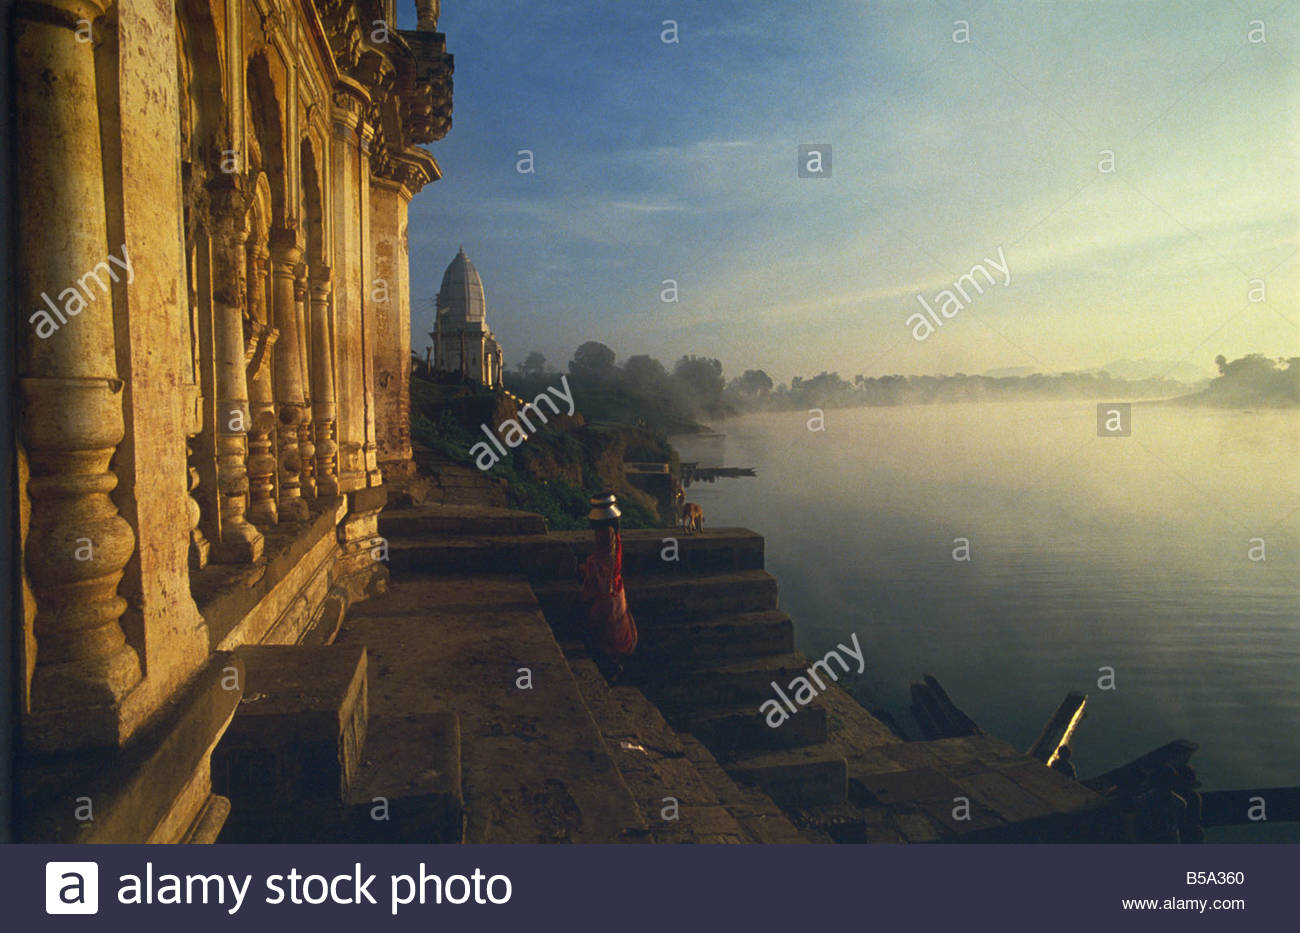 Misty dawn on Narmada River, bathing ghats at Mandla, Madhya Pradesh state, India - Stock Image